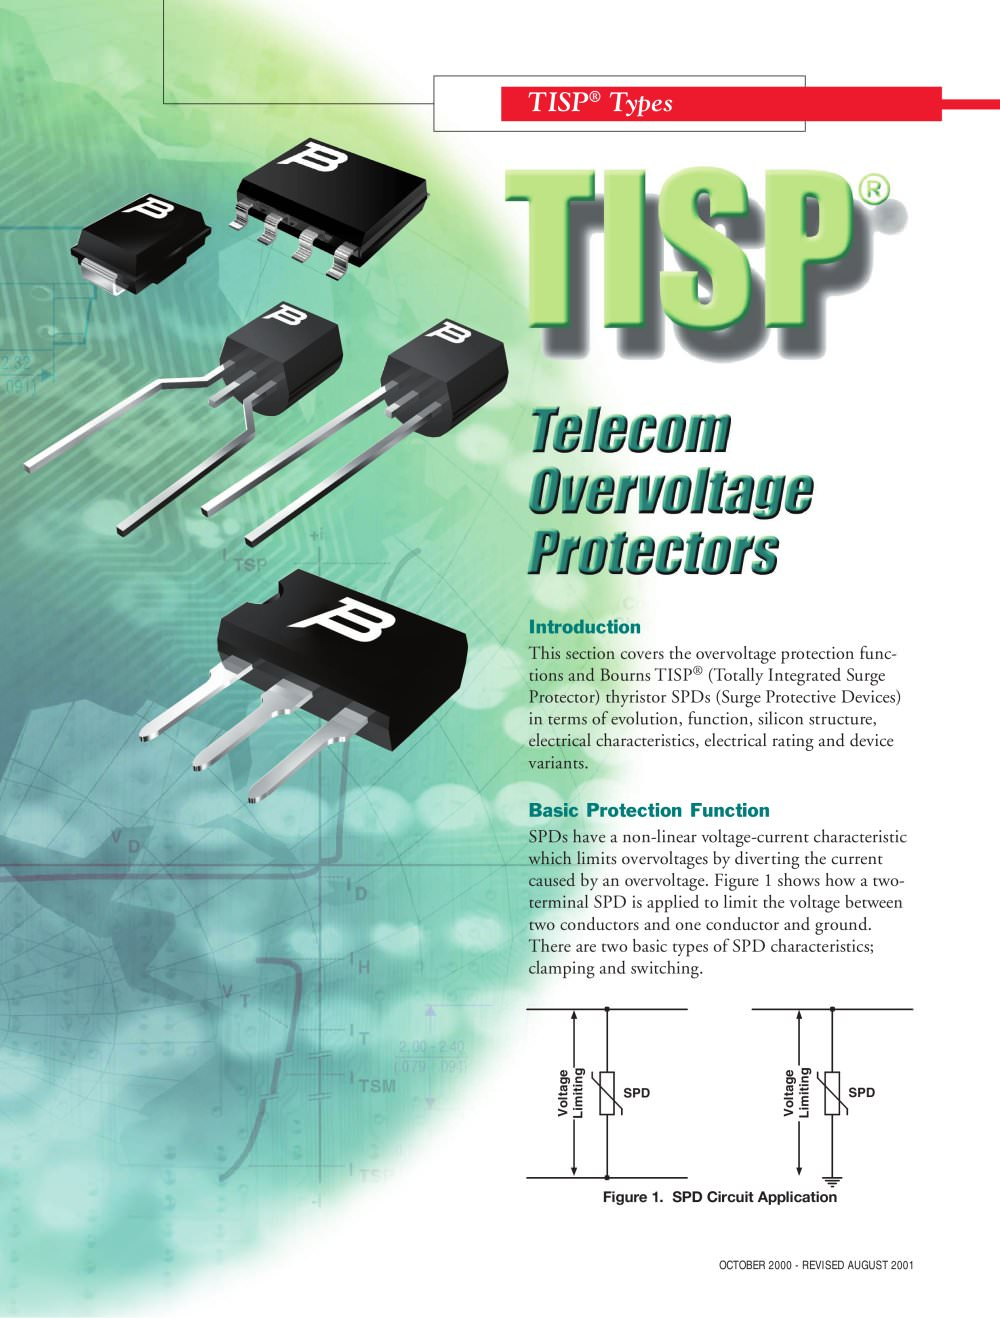 Introduction To Bourns Tisp Telecom Overvoltage Protectors Voltage Protector Circuit 1 18 Pages